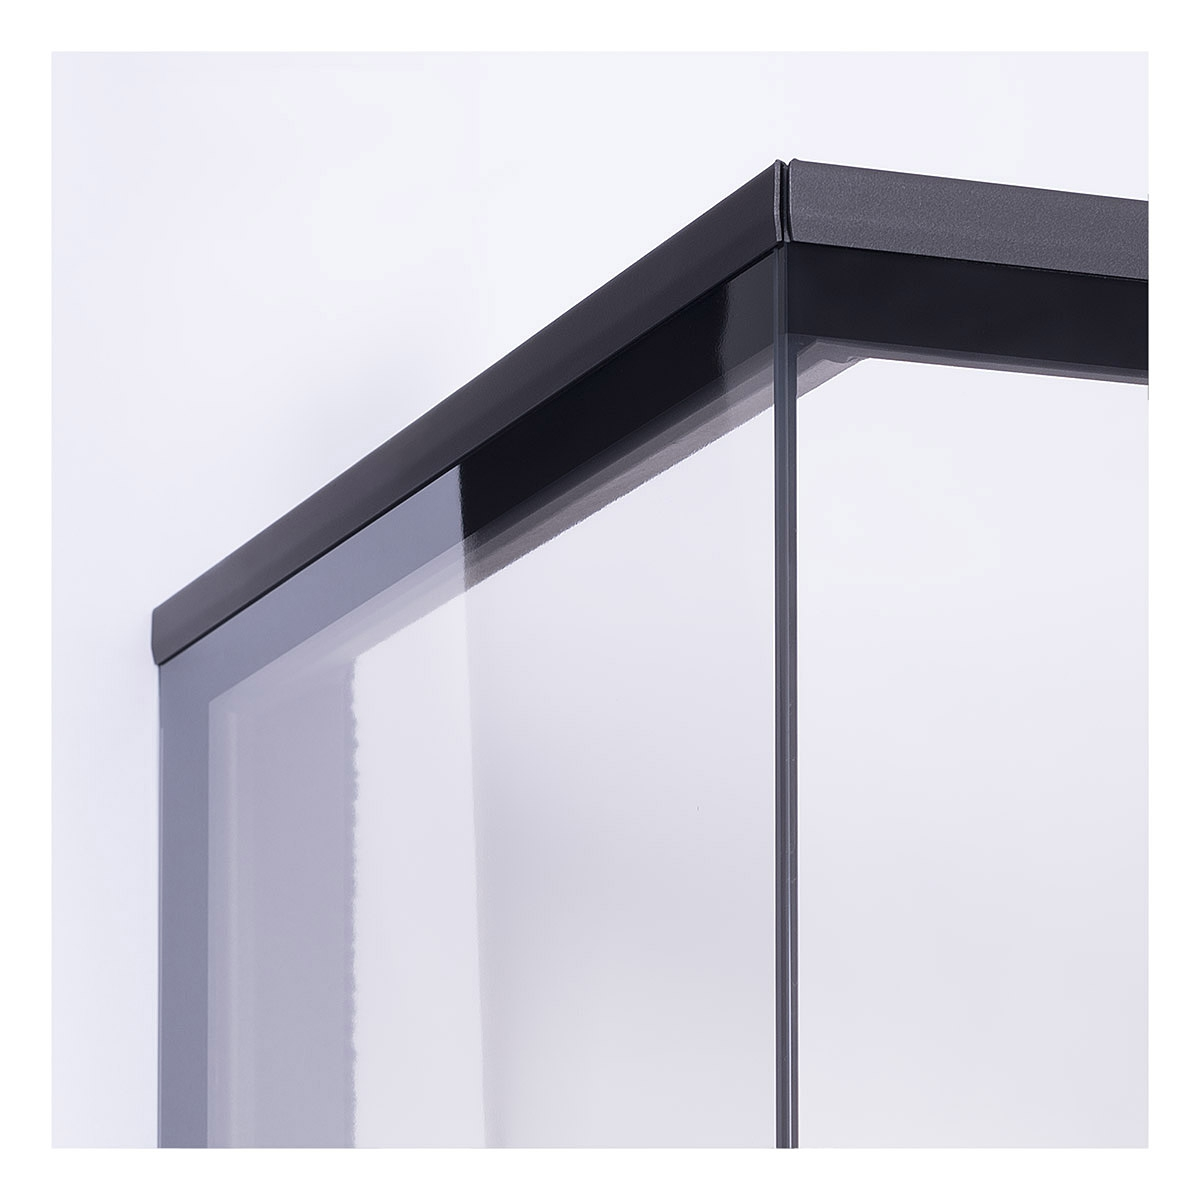 HEAT C 2g L 65.52.31.01(21) - hot-air three-sided fireplace insert with lifting door and bent (split) glazing